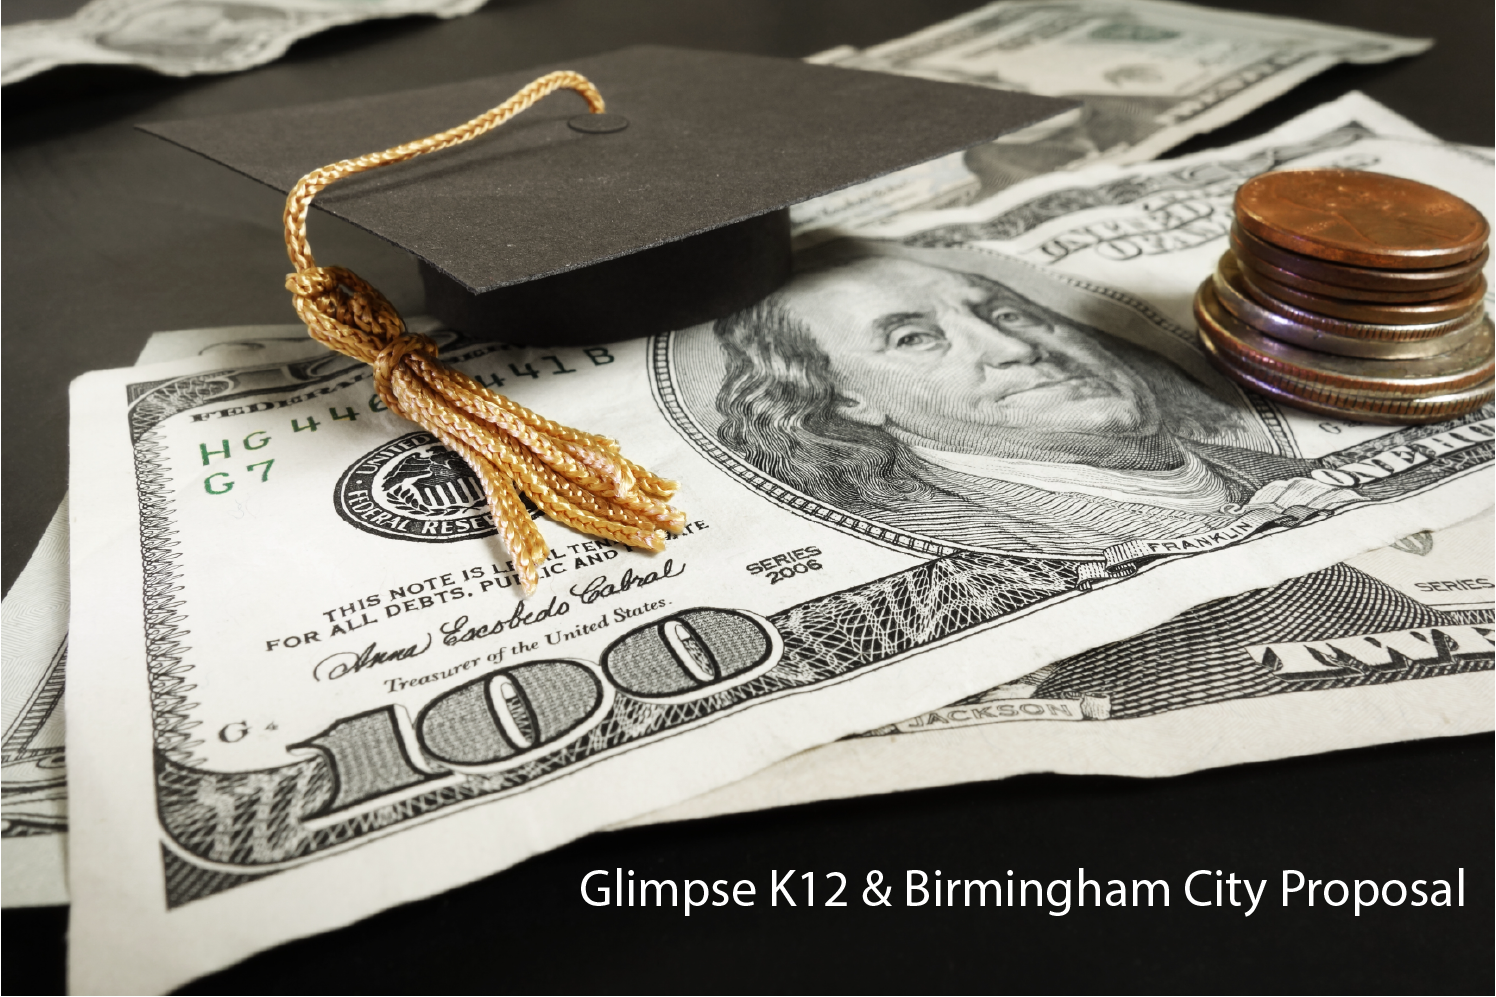 Jackson County, TN Ensures Efficacy of Student Resources with New Funds